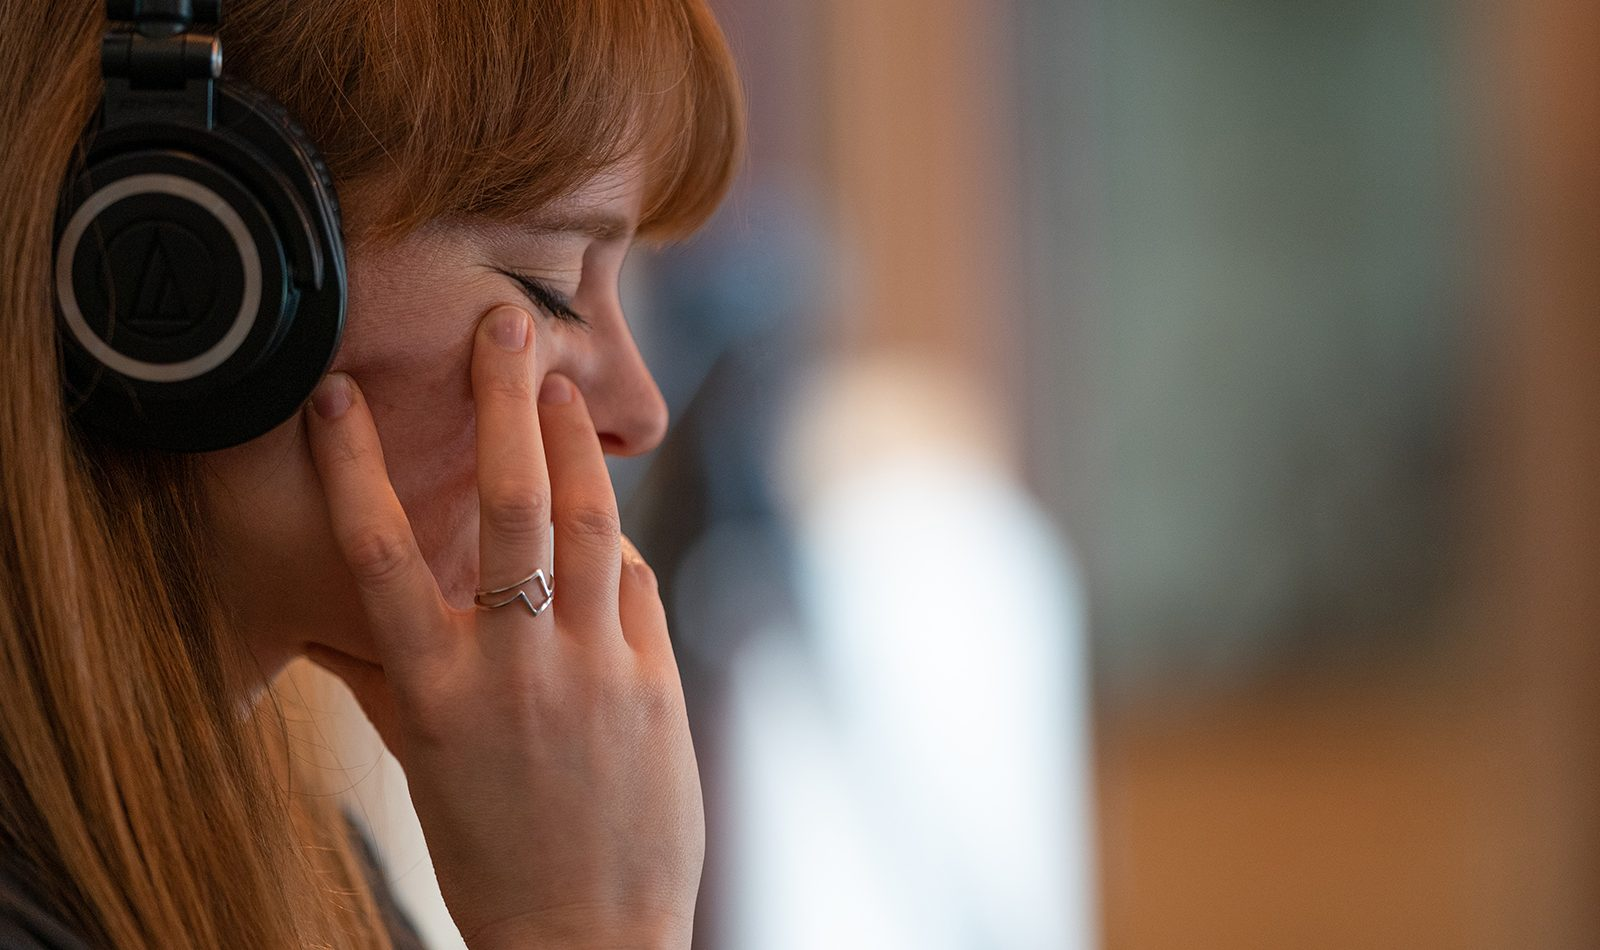 Side profile of a caucasian woman with red hair, she wears headphones and has her eyse closed looking pensive